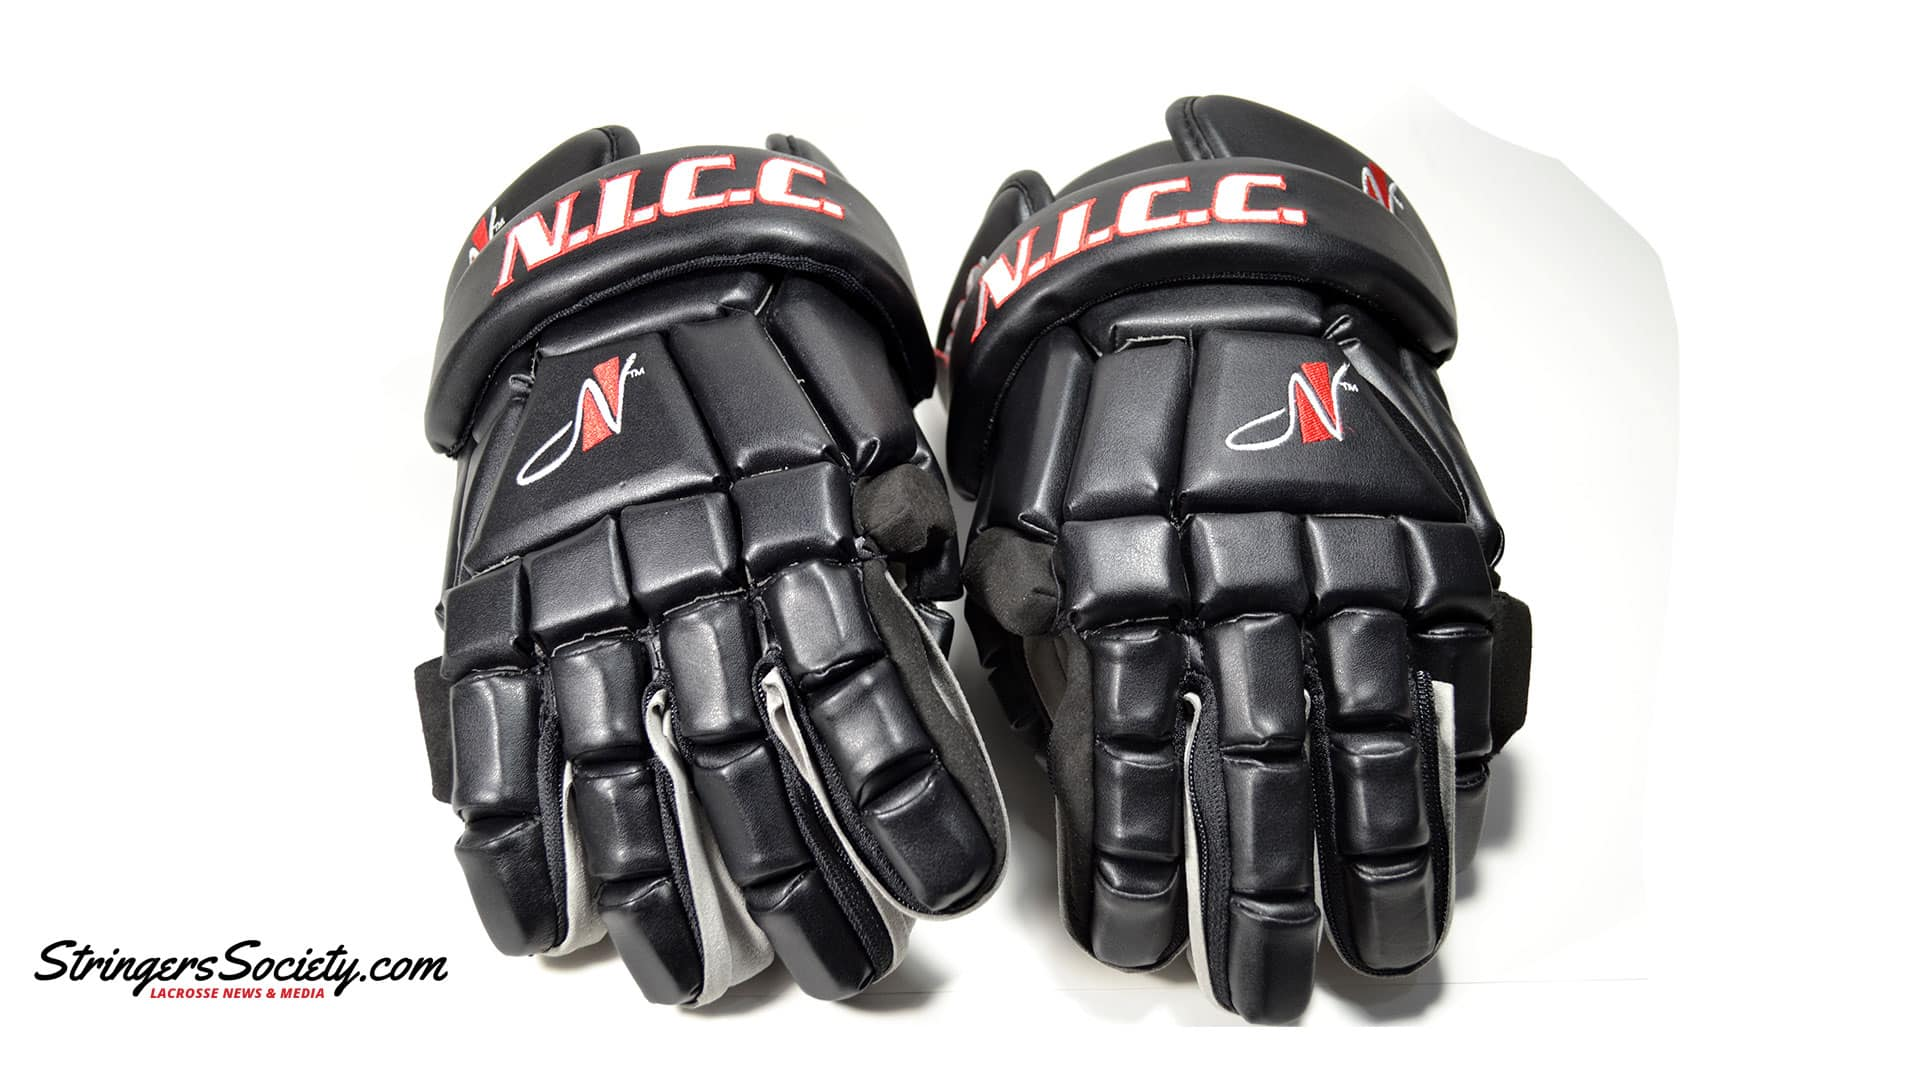 NICC Lacrosse Glove Review